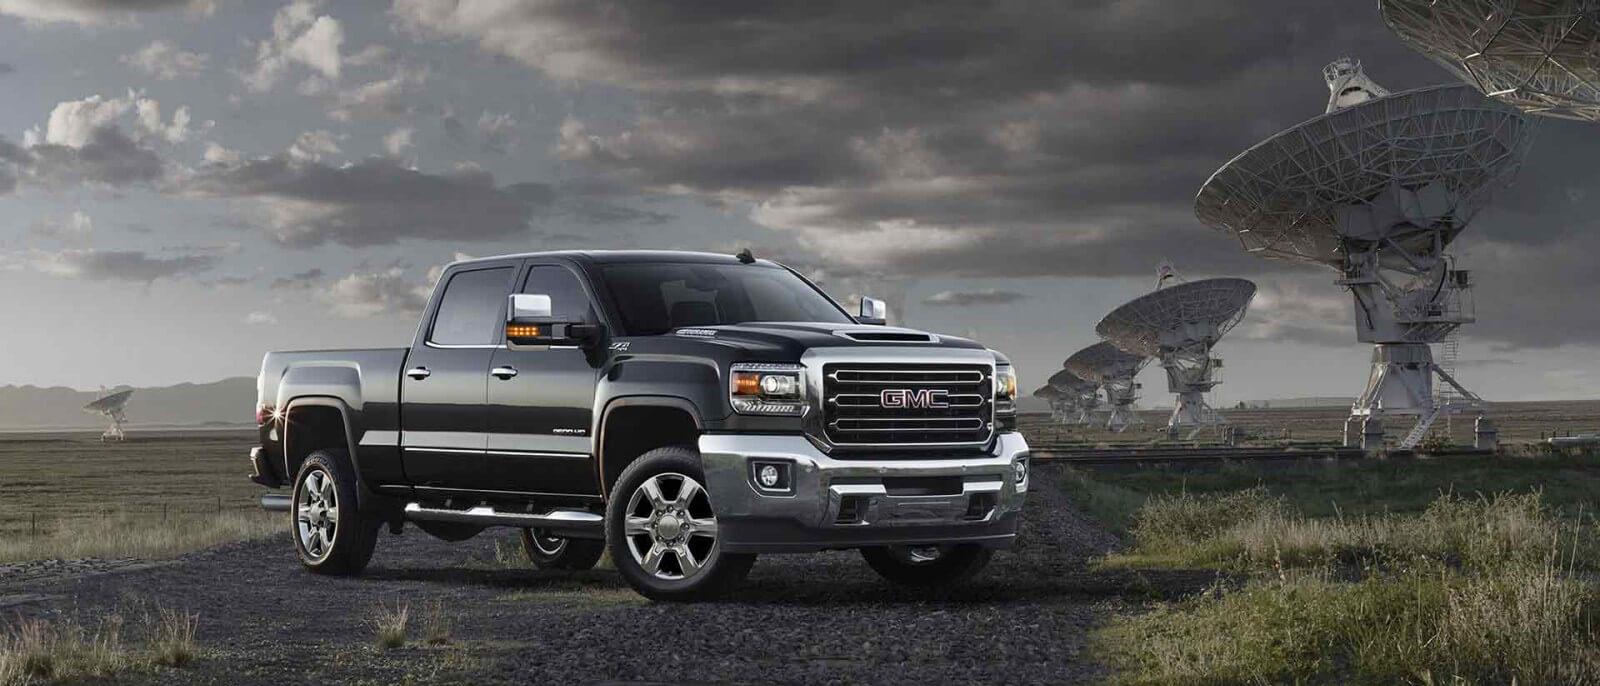 Get The Job Done With A Gmc Sierra 2500hd